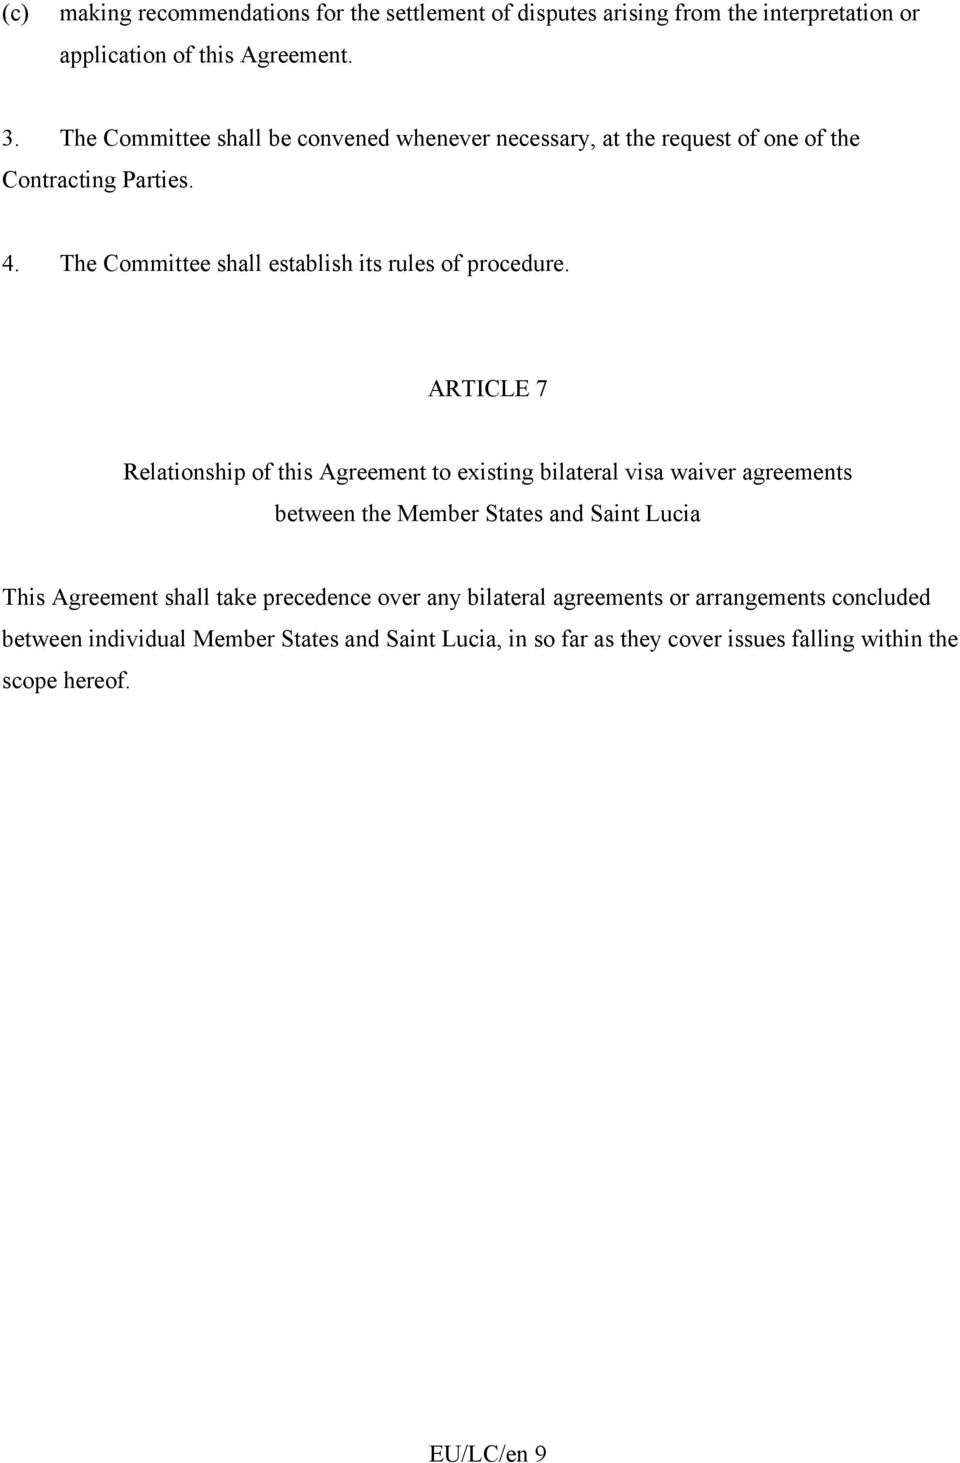 ARTICLE 7 Relationship of this Agreement to existing bilateral visa waiver agreements between the Member States and Saint Lucia This Agreement shall take